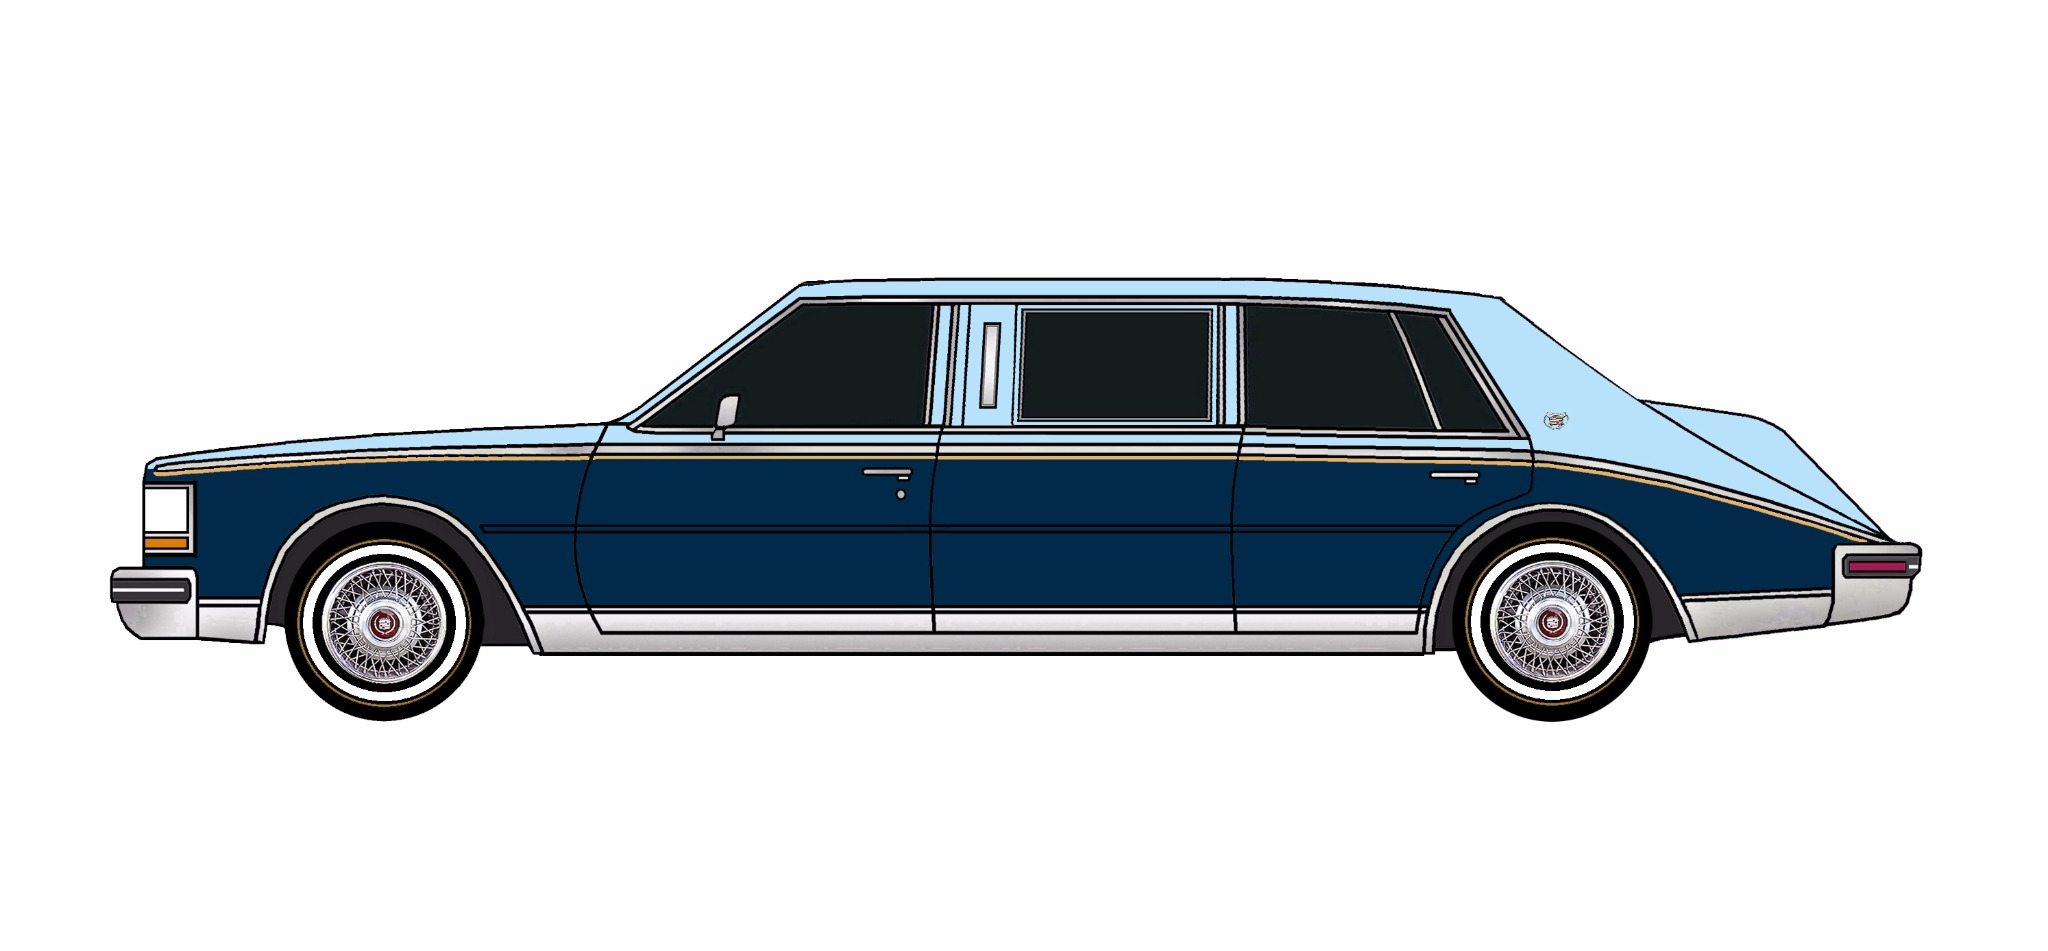 1980 Cadillac Seville Limo PALE BLUE & MIDNIGHT BLUE